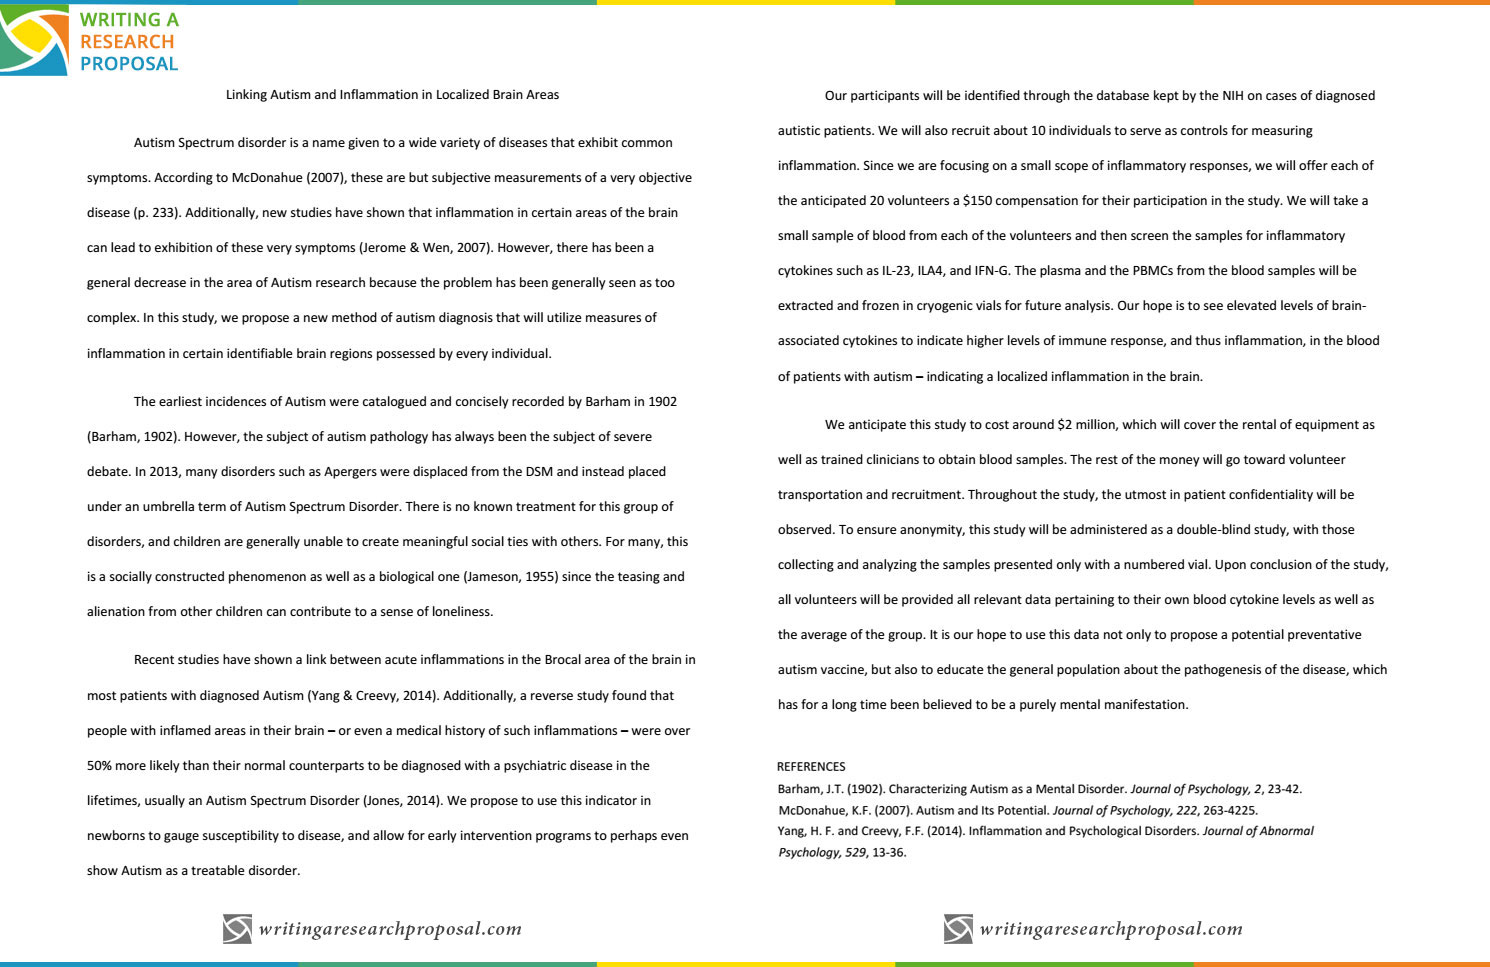 010 Essay Format Apa Researchproposalapa Fantastic Sample 500 Word Cover Page Full